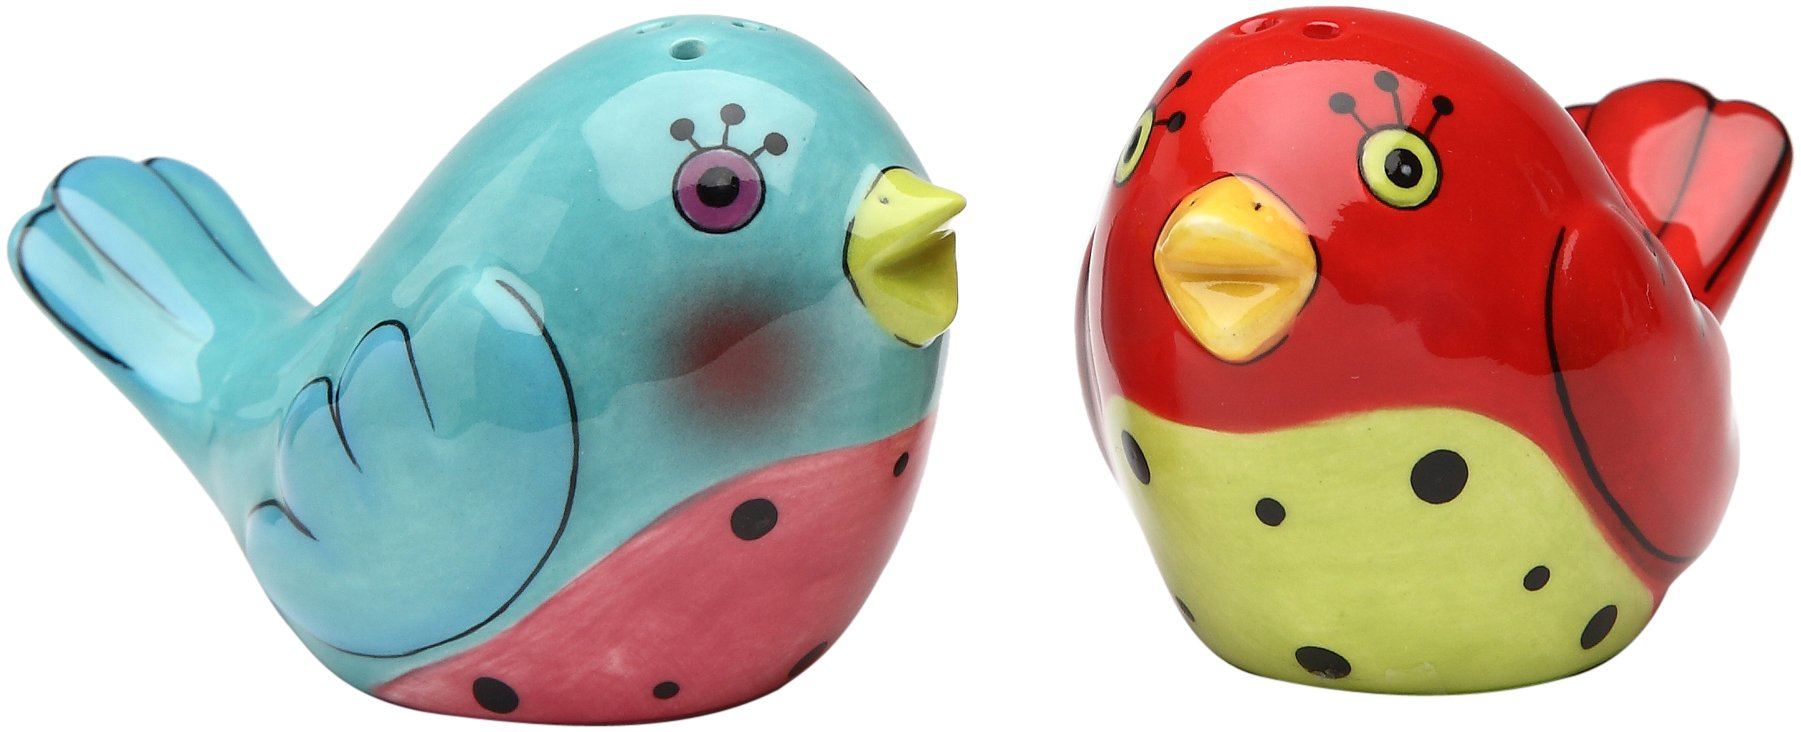 Appletree 1-3/4-Inch Ceramic Red and Blue Love Birds Salt and Pepper